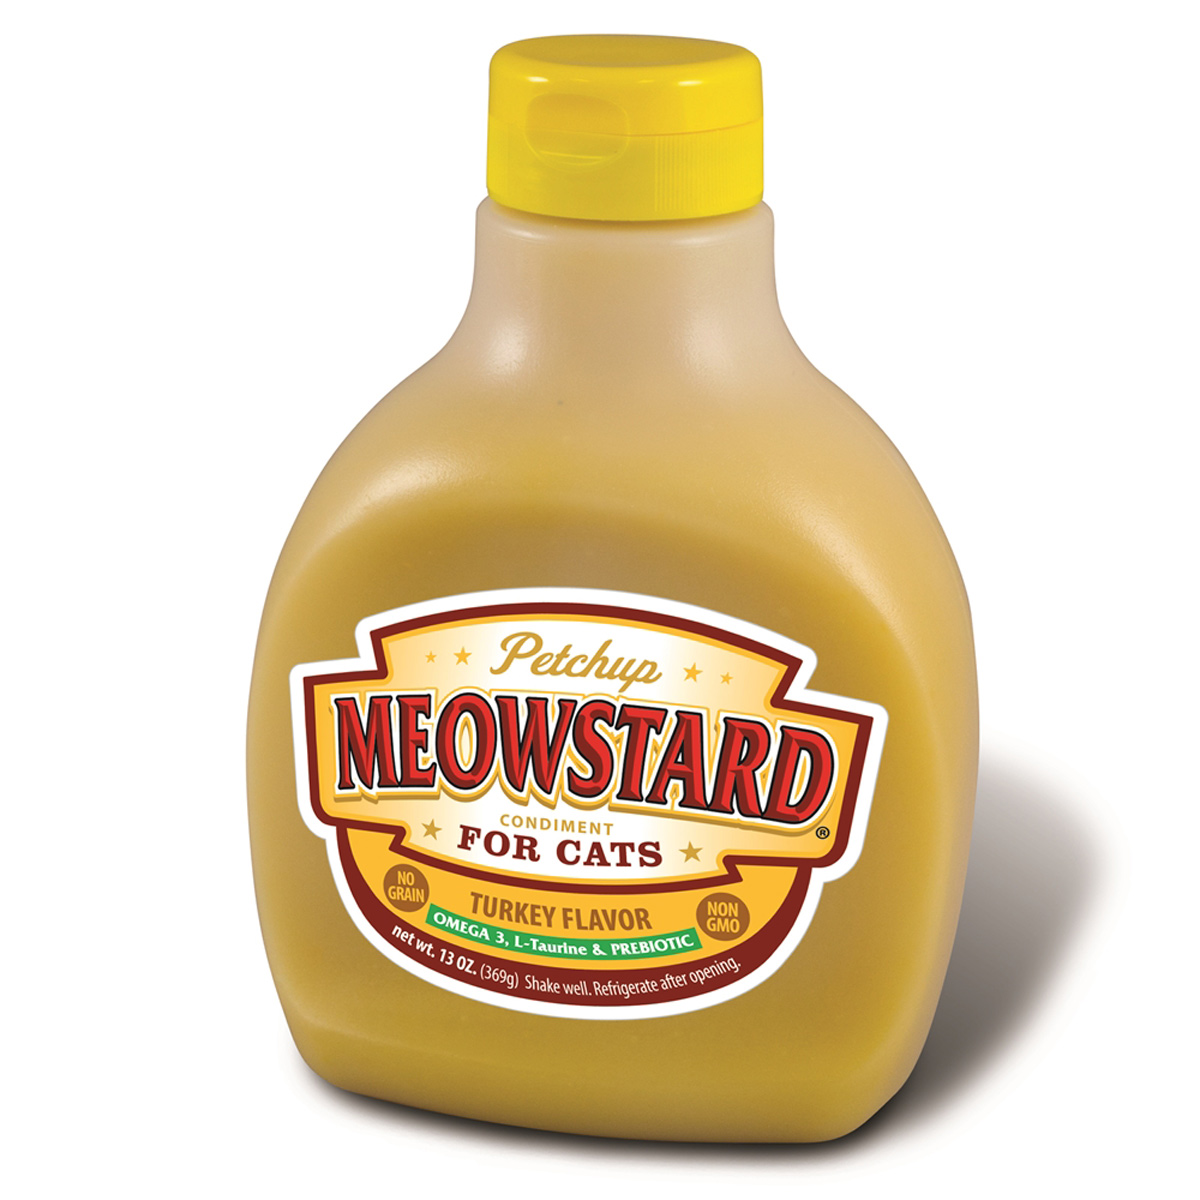 Meowstard Cat Food Condiment by Petchup - Turkey Flavored